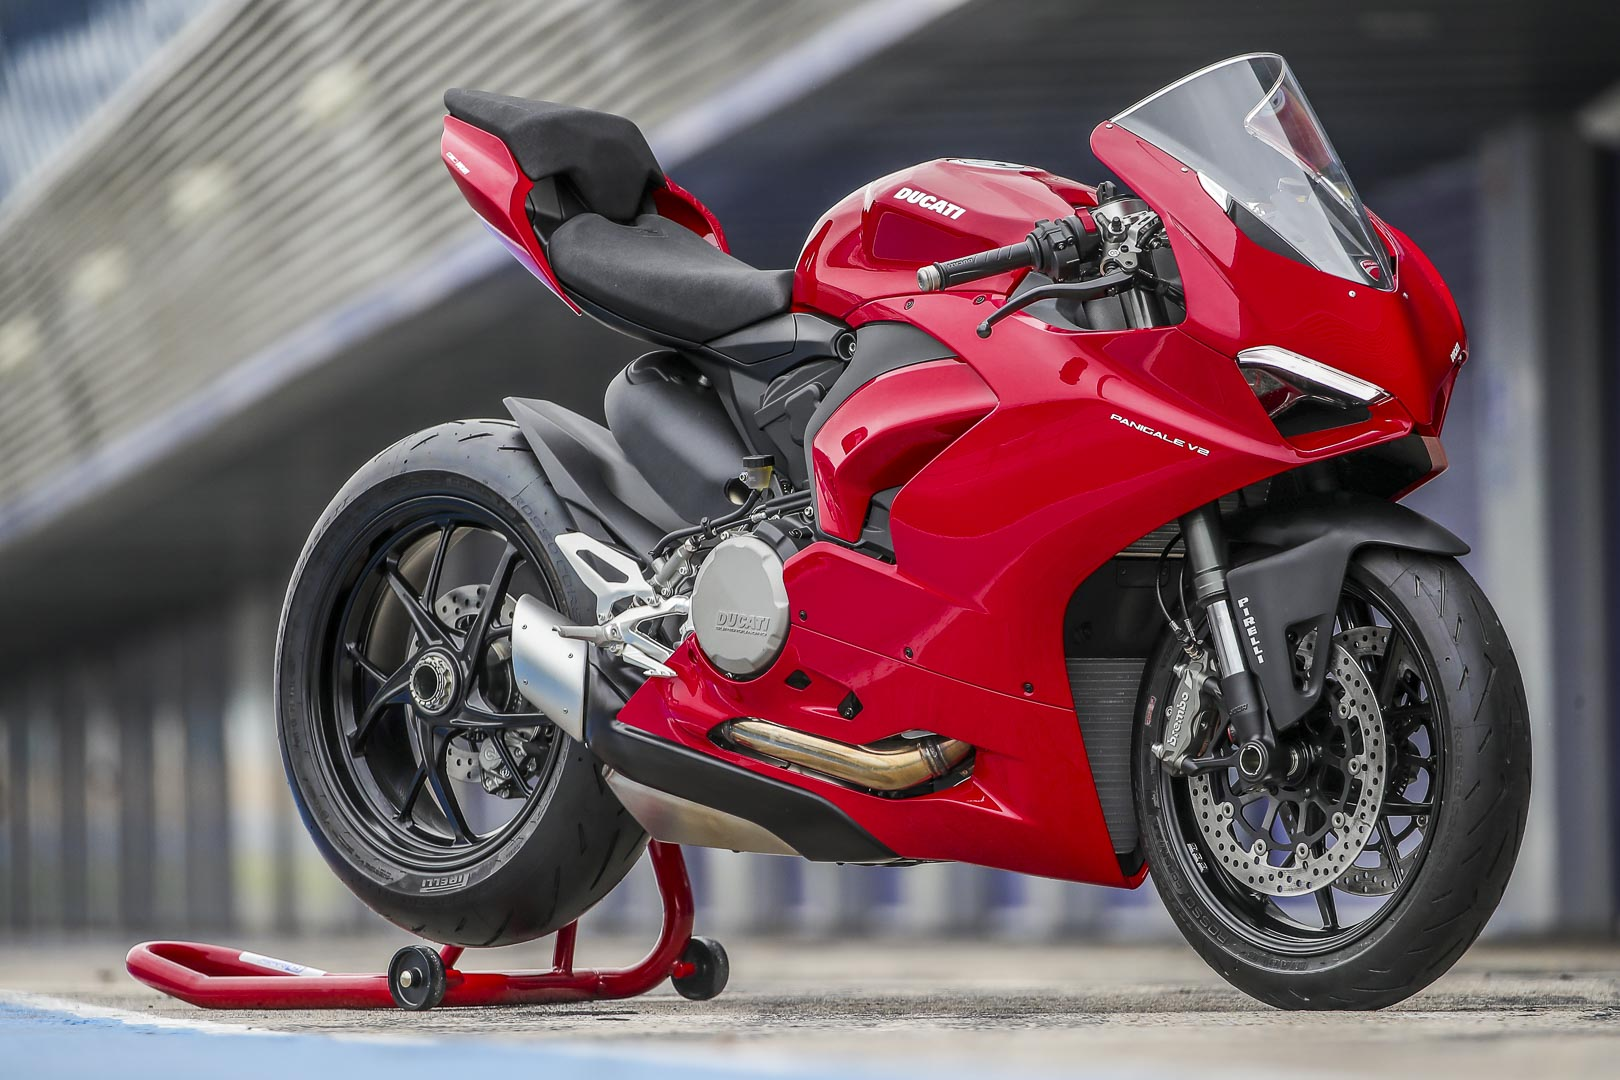 Ducati Panigale V2 & Panigale V4- Best Motorcycles